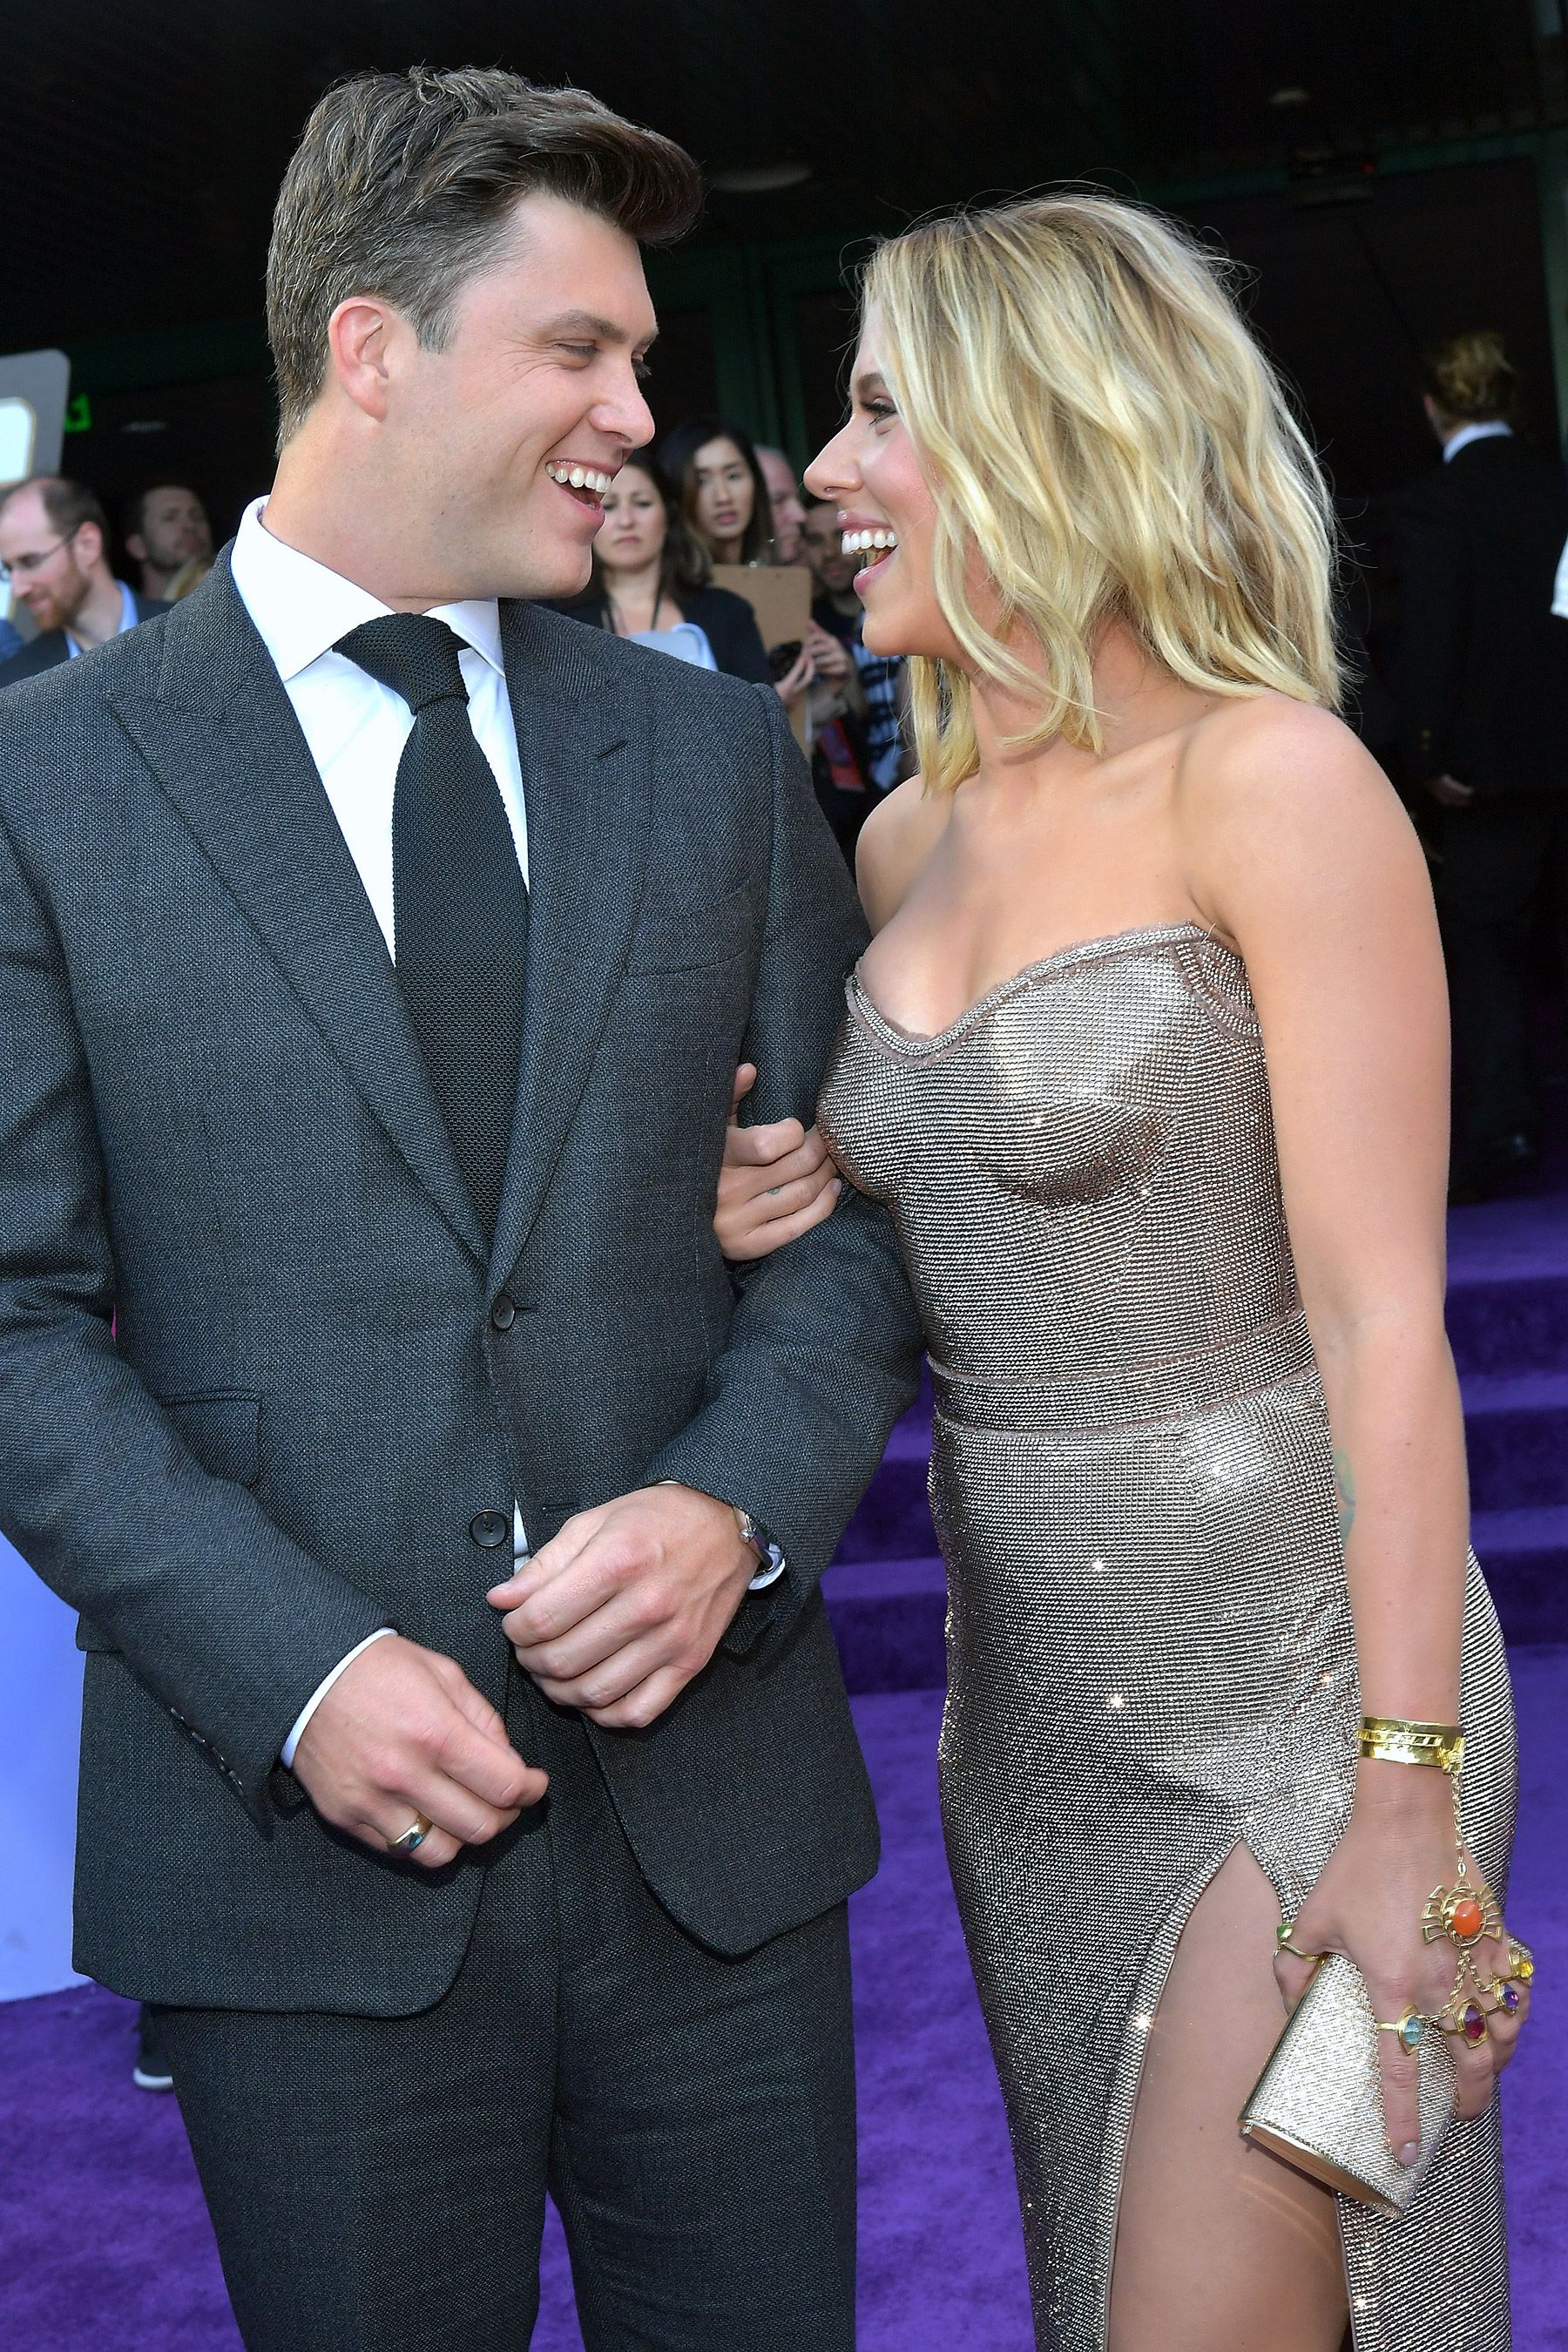 Scarlett Johansson and SNL's Colin Jost Are Engaged After